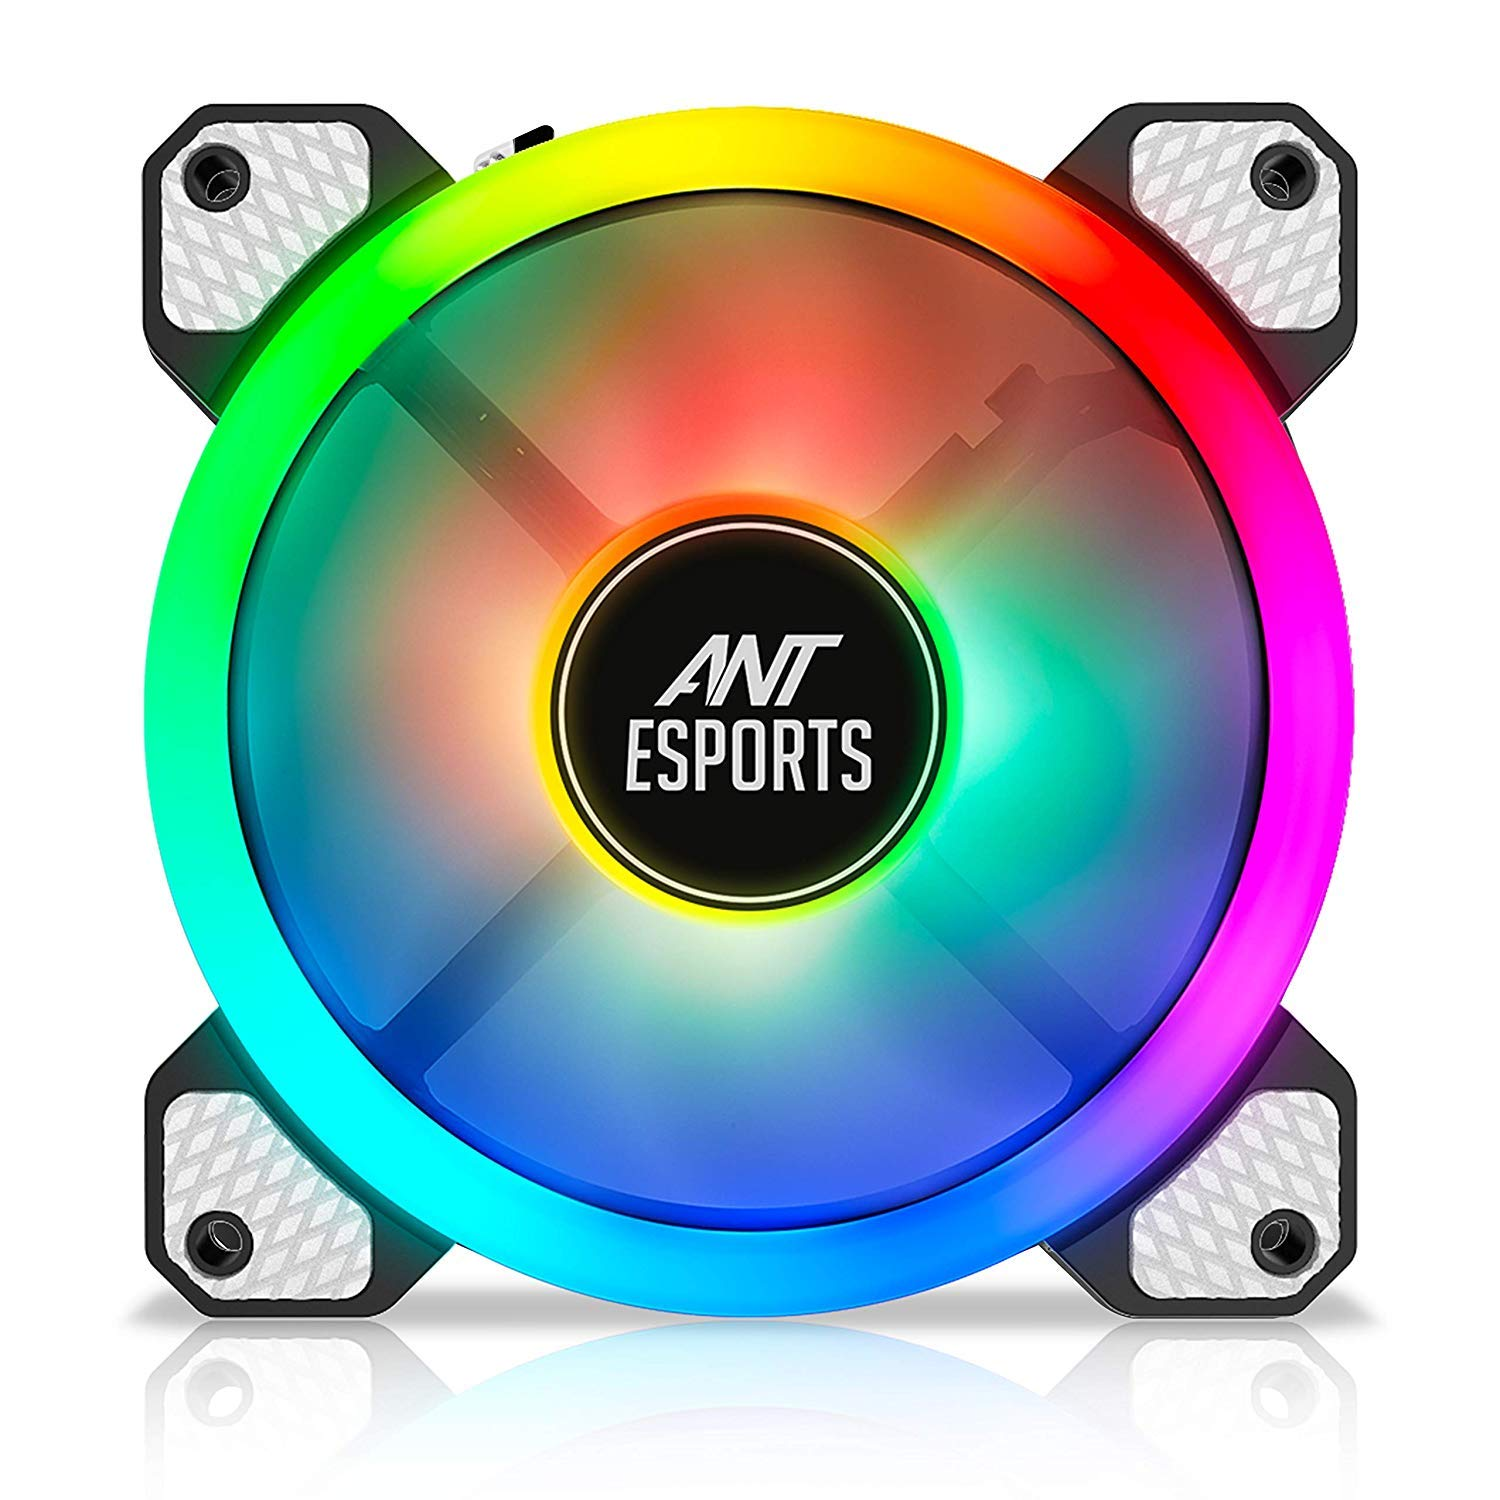 Ant Esports Superflow 120 Auto RGB V2 1200 RPM Case Fan/Cooler